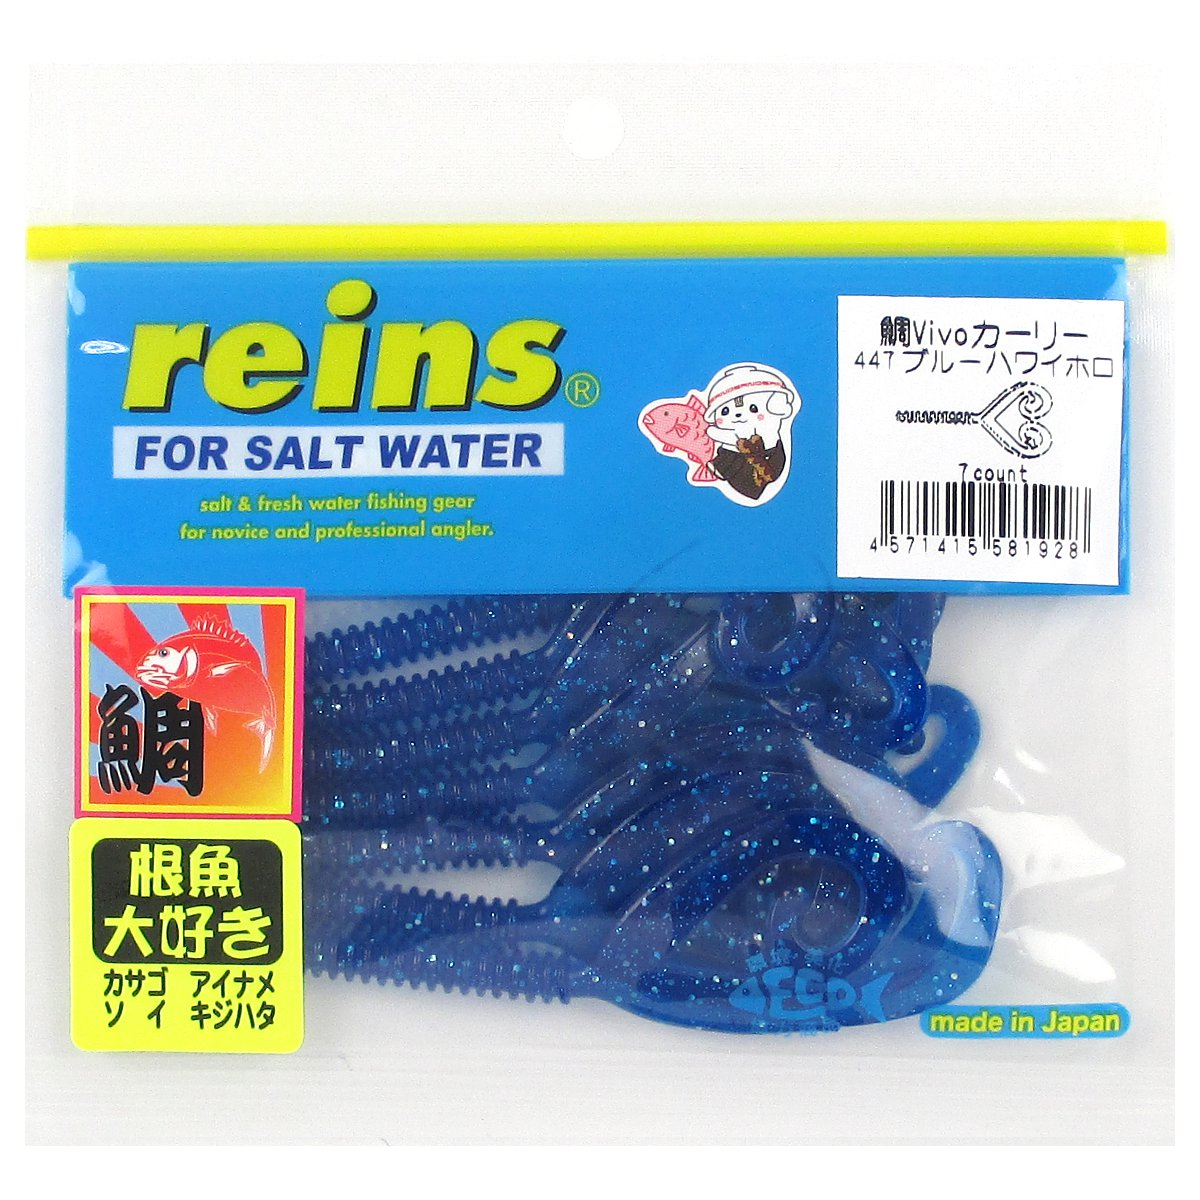 fresh salt water fishing Freshwater fish differ physiologically from salt water fish in several respects their gills must be able to diffuse dissolved gasses while keeping the salts in the body fluids inside.